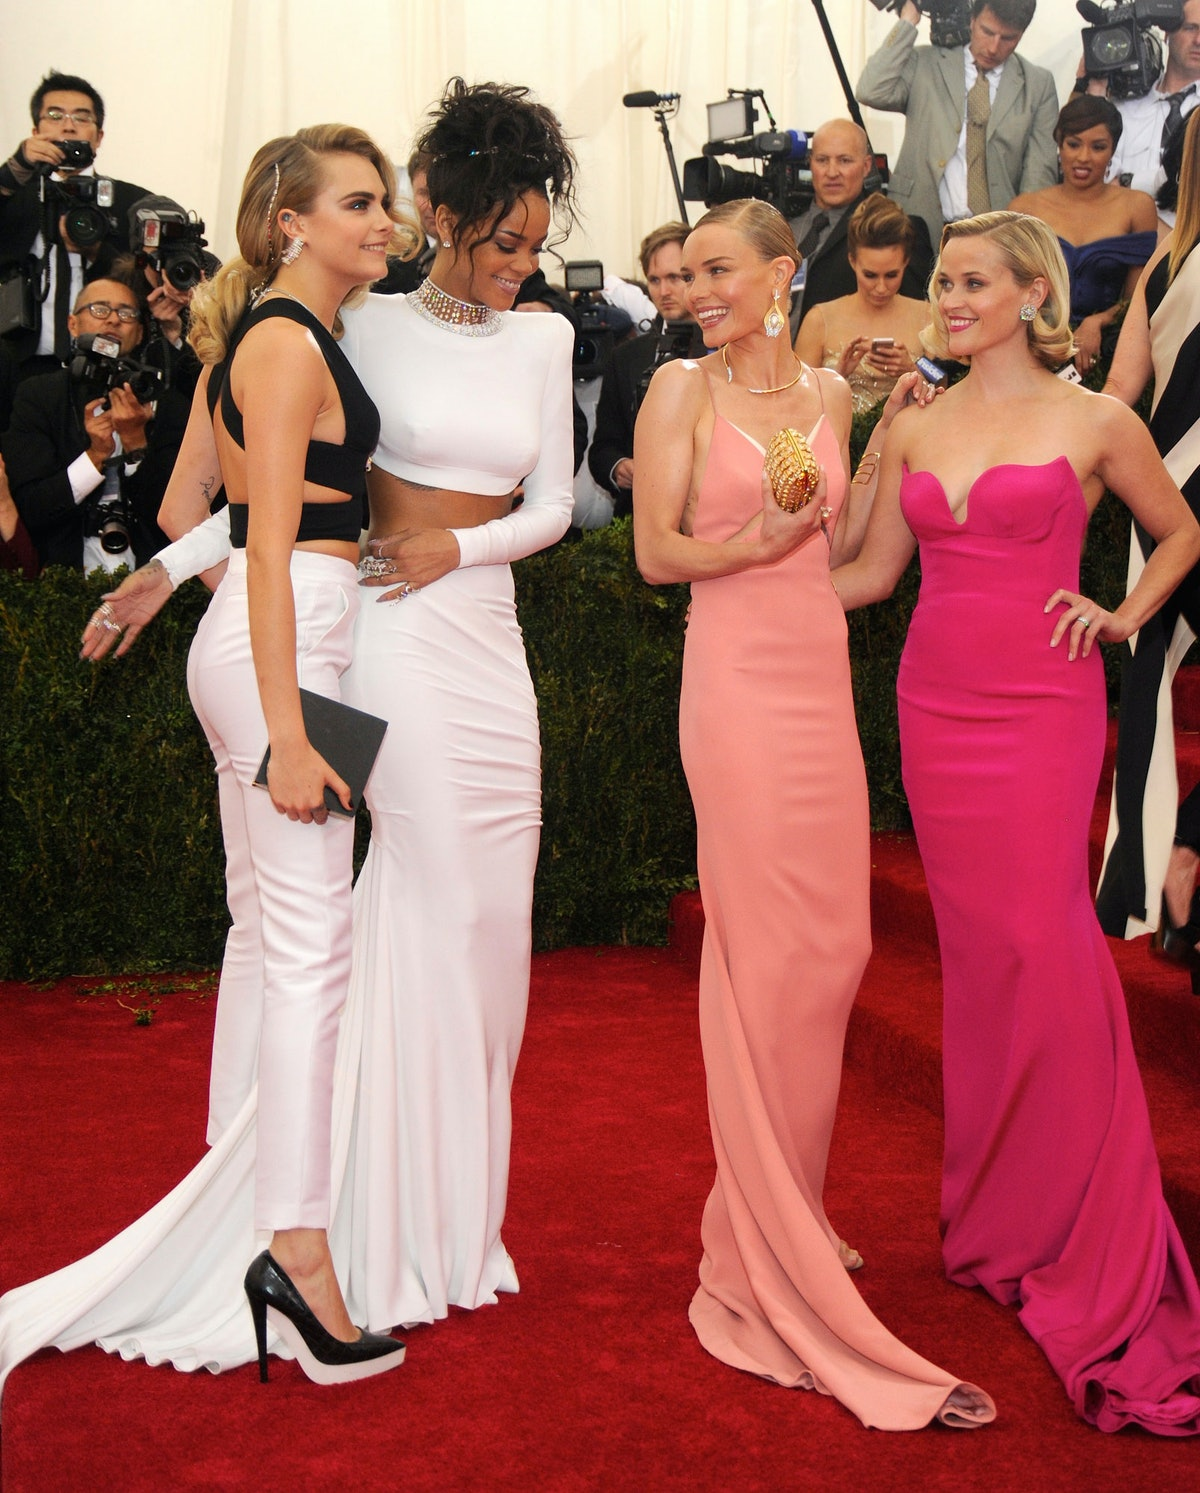 Cara Delevingne, Rihanna, Kate Bosworth, and Reese Witherspoon